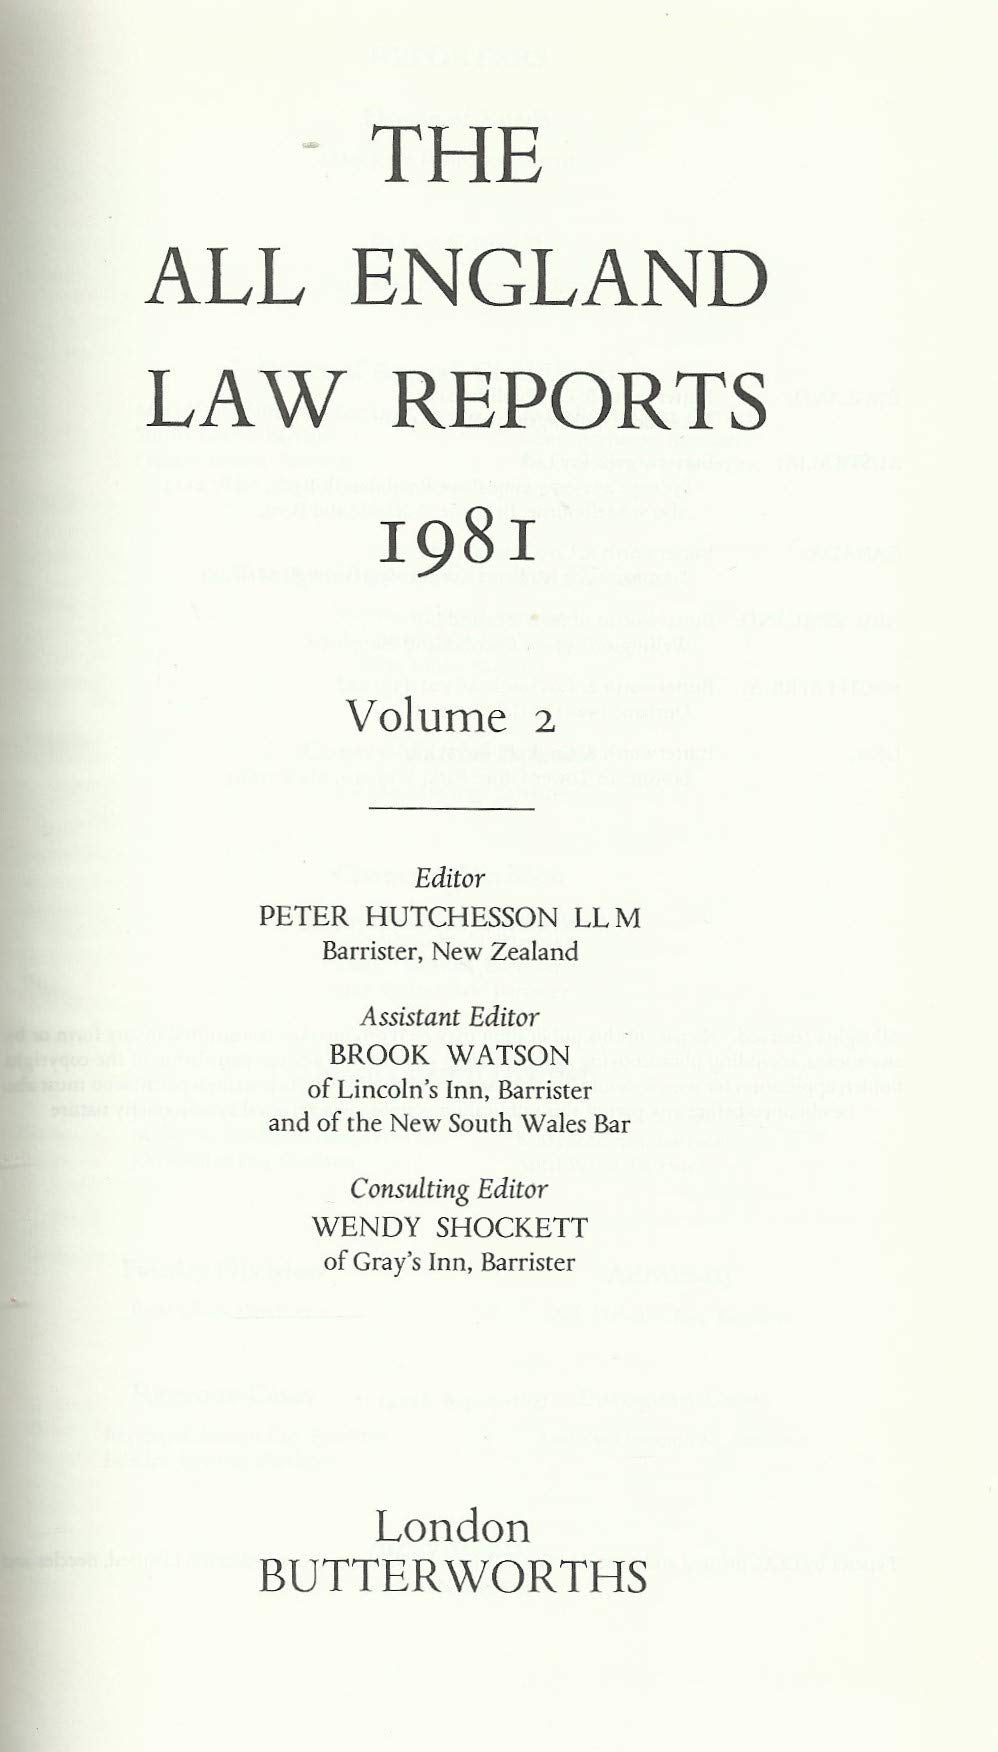 The All England Law Reports 1981: Volume 2